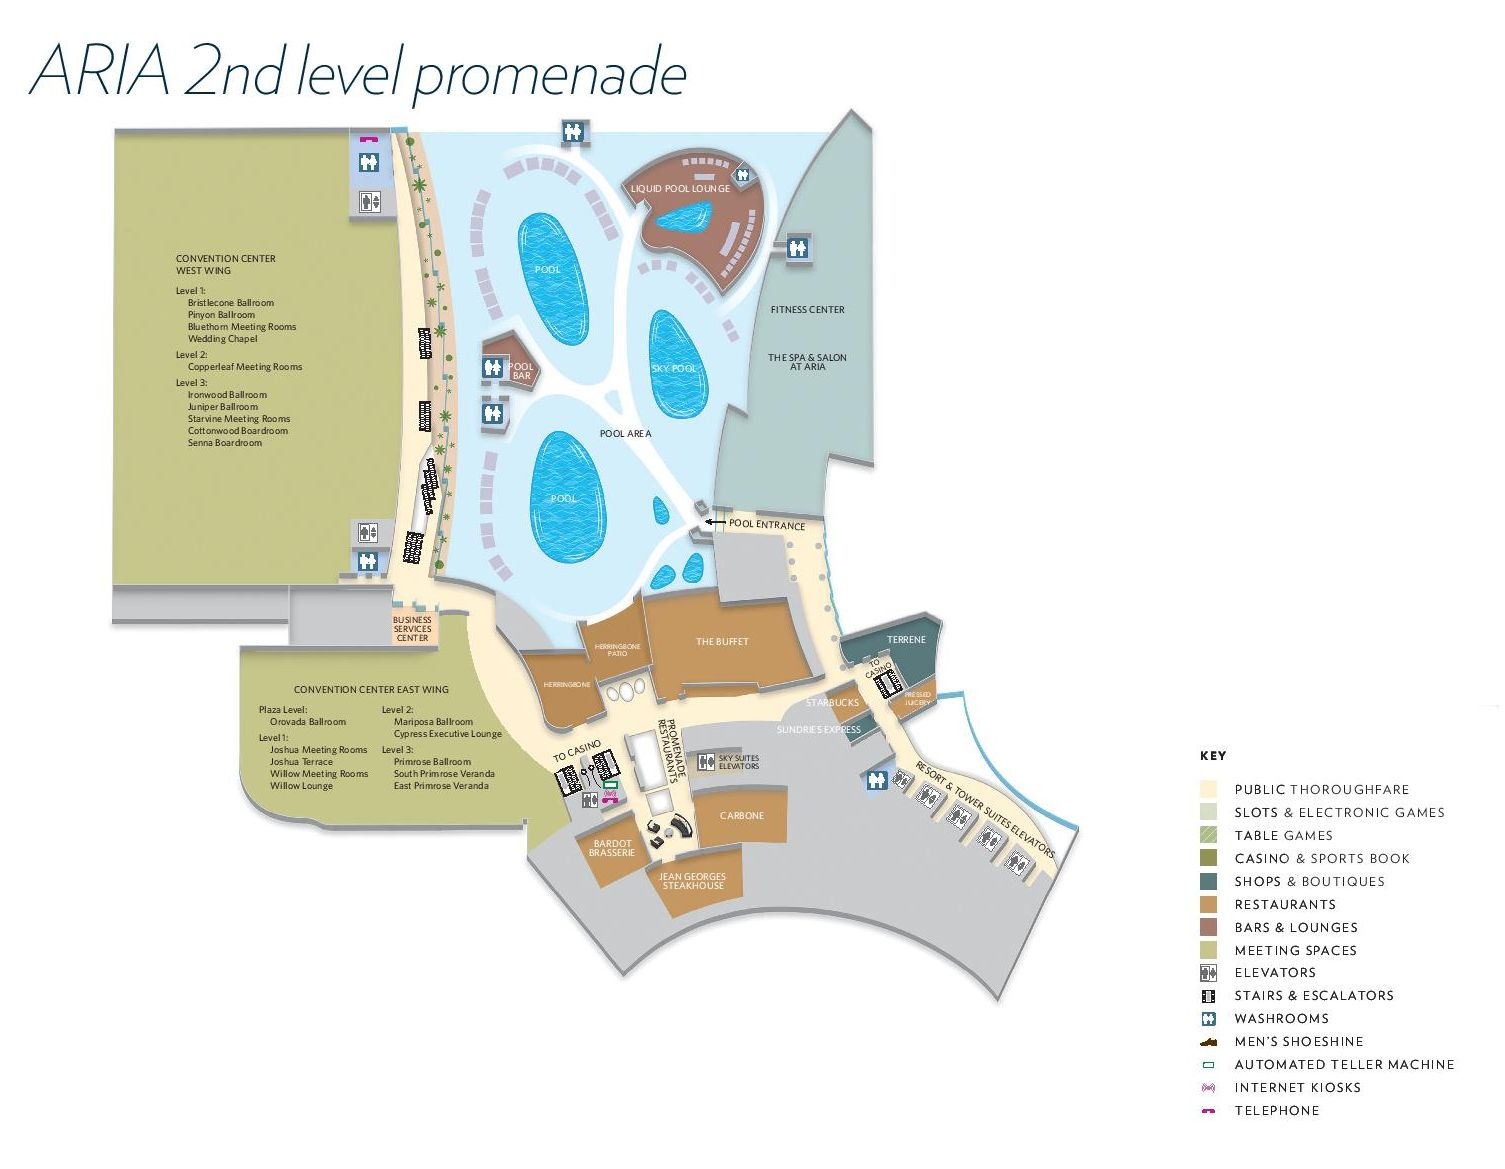 Aria Las Vegas Property Map 2nd Level Promenade